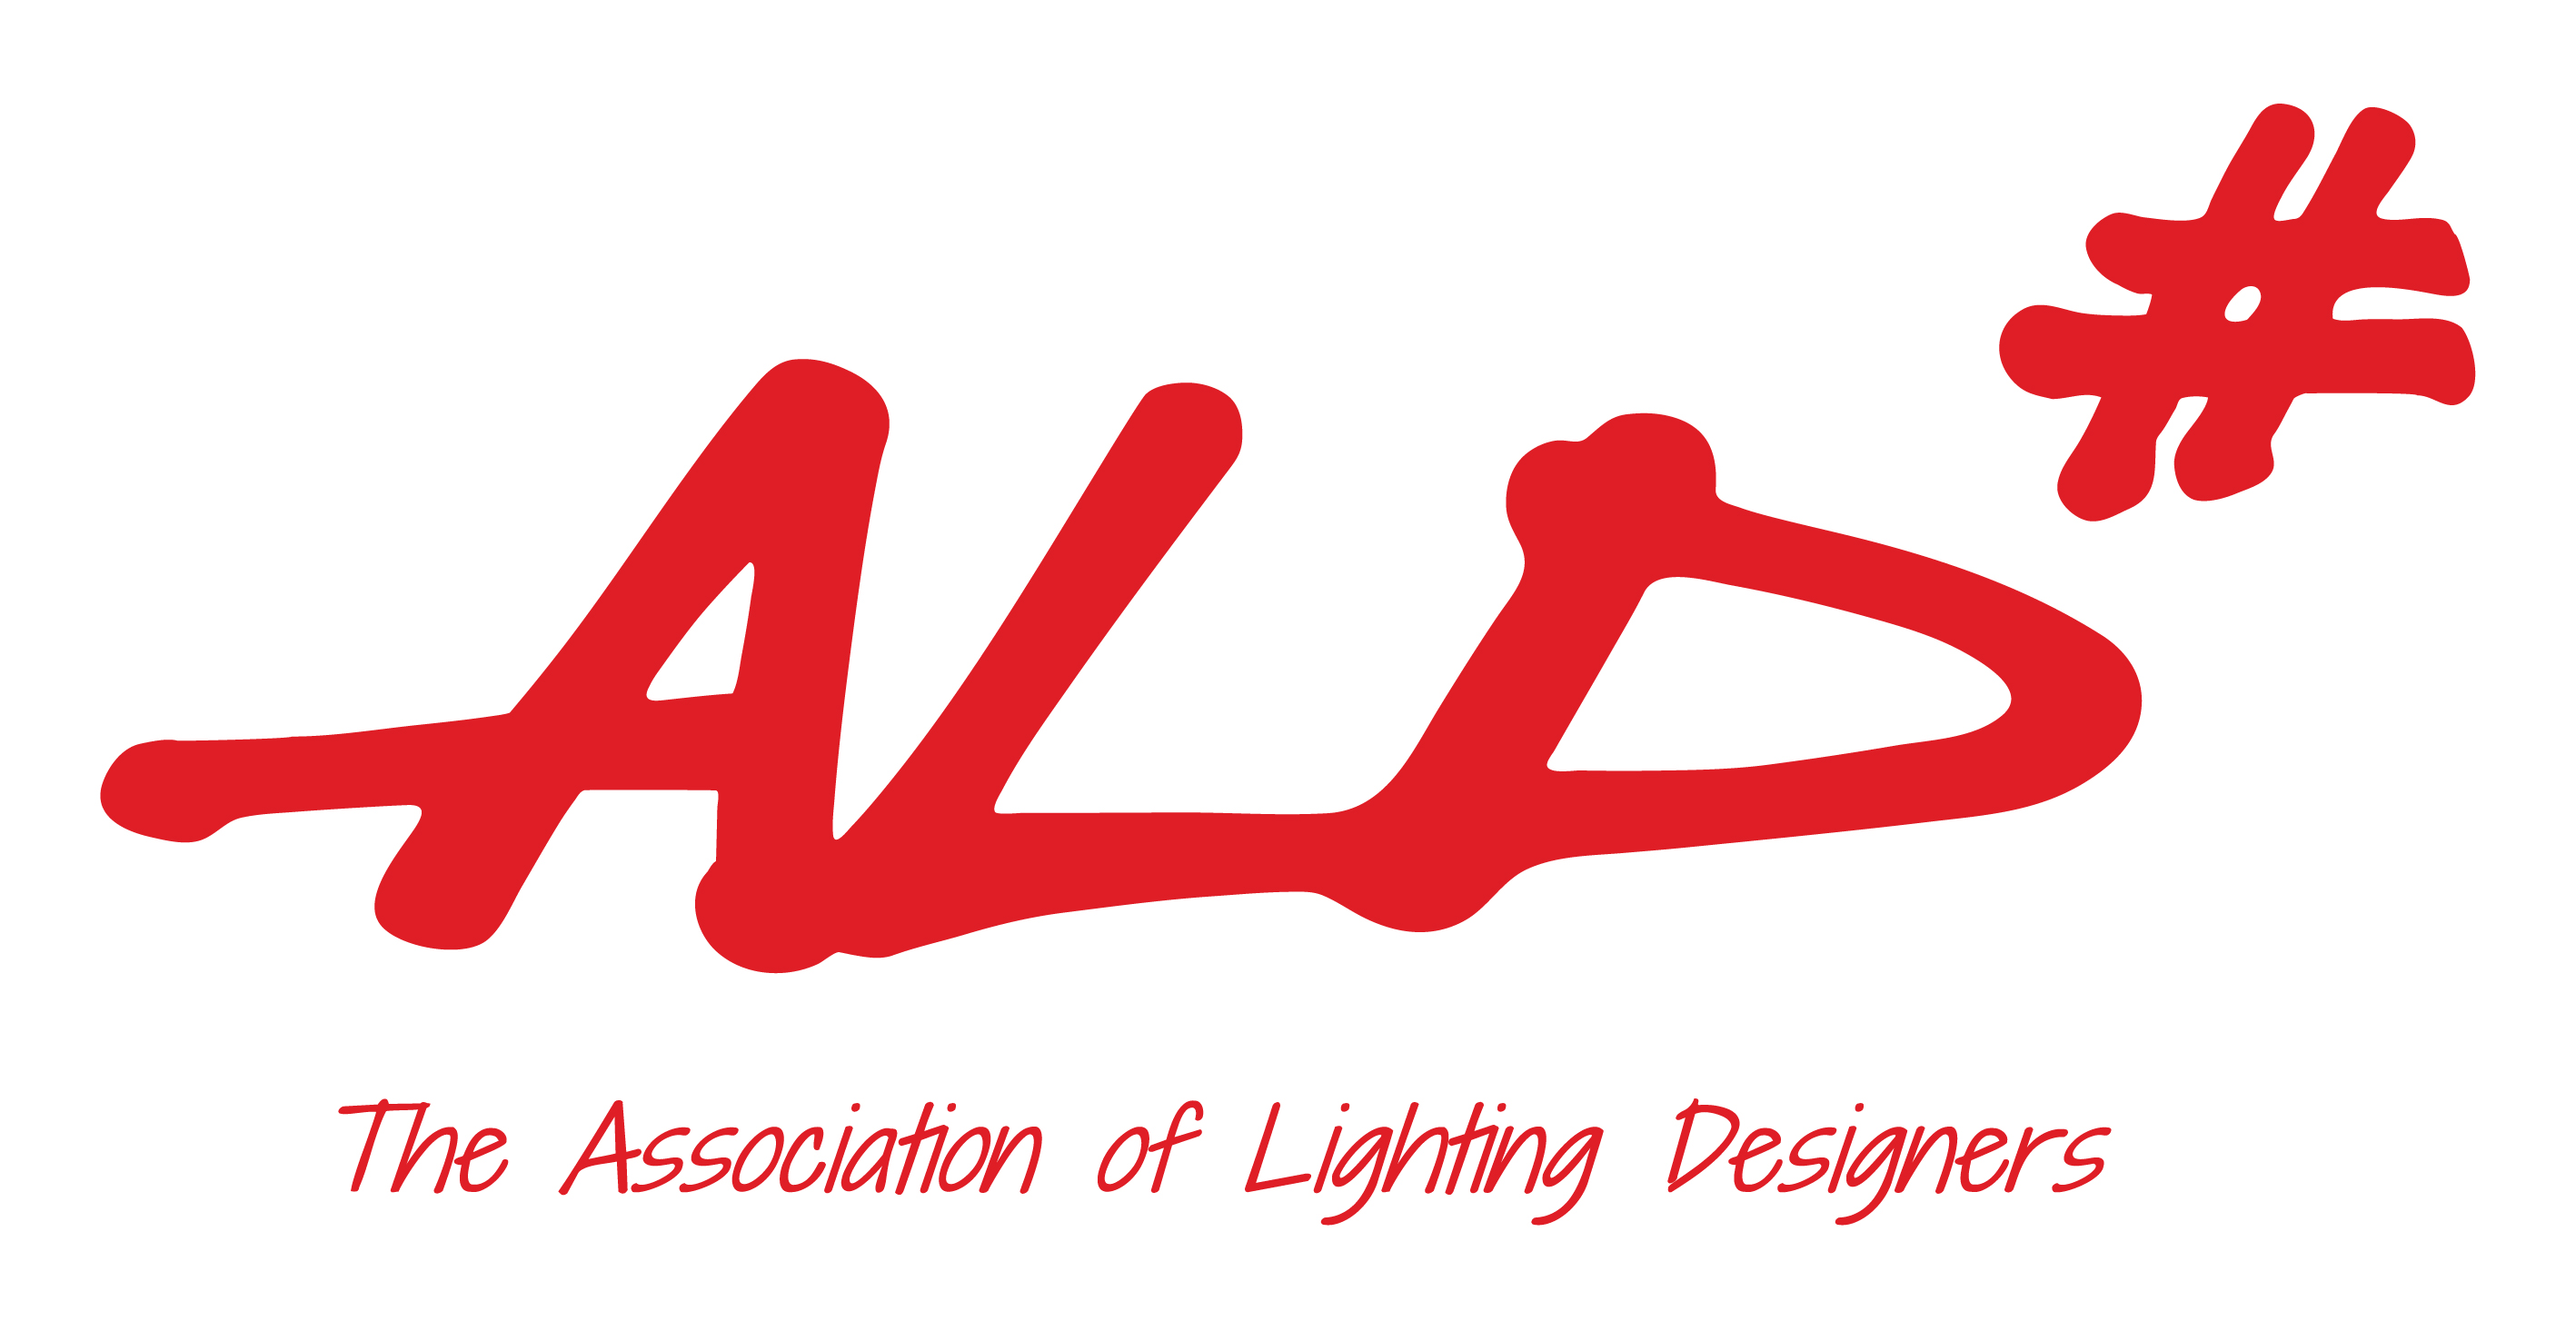 ALD - Association of Lighting Designers